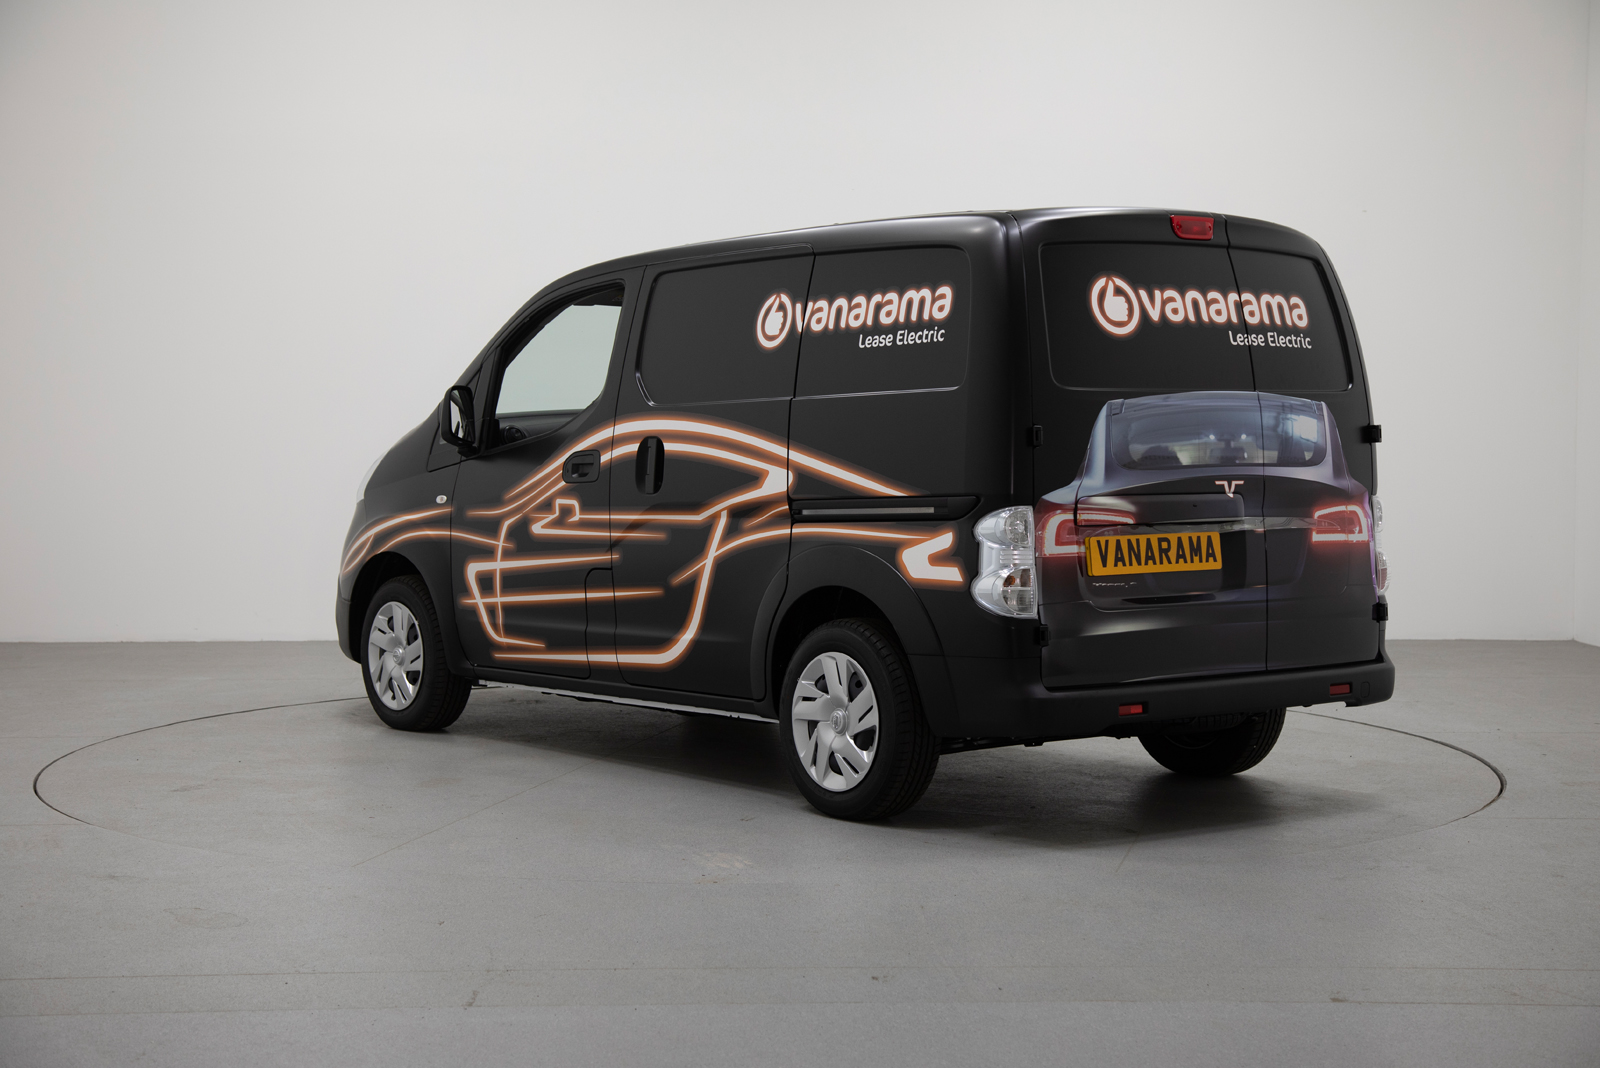 Vanarama offers their latest electric solutions